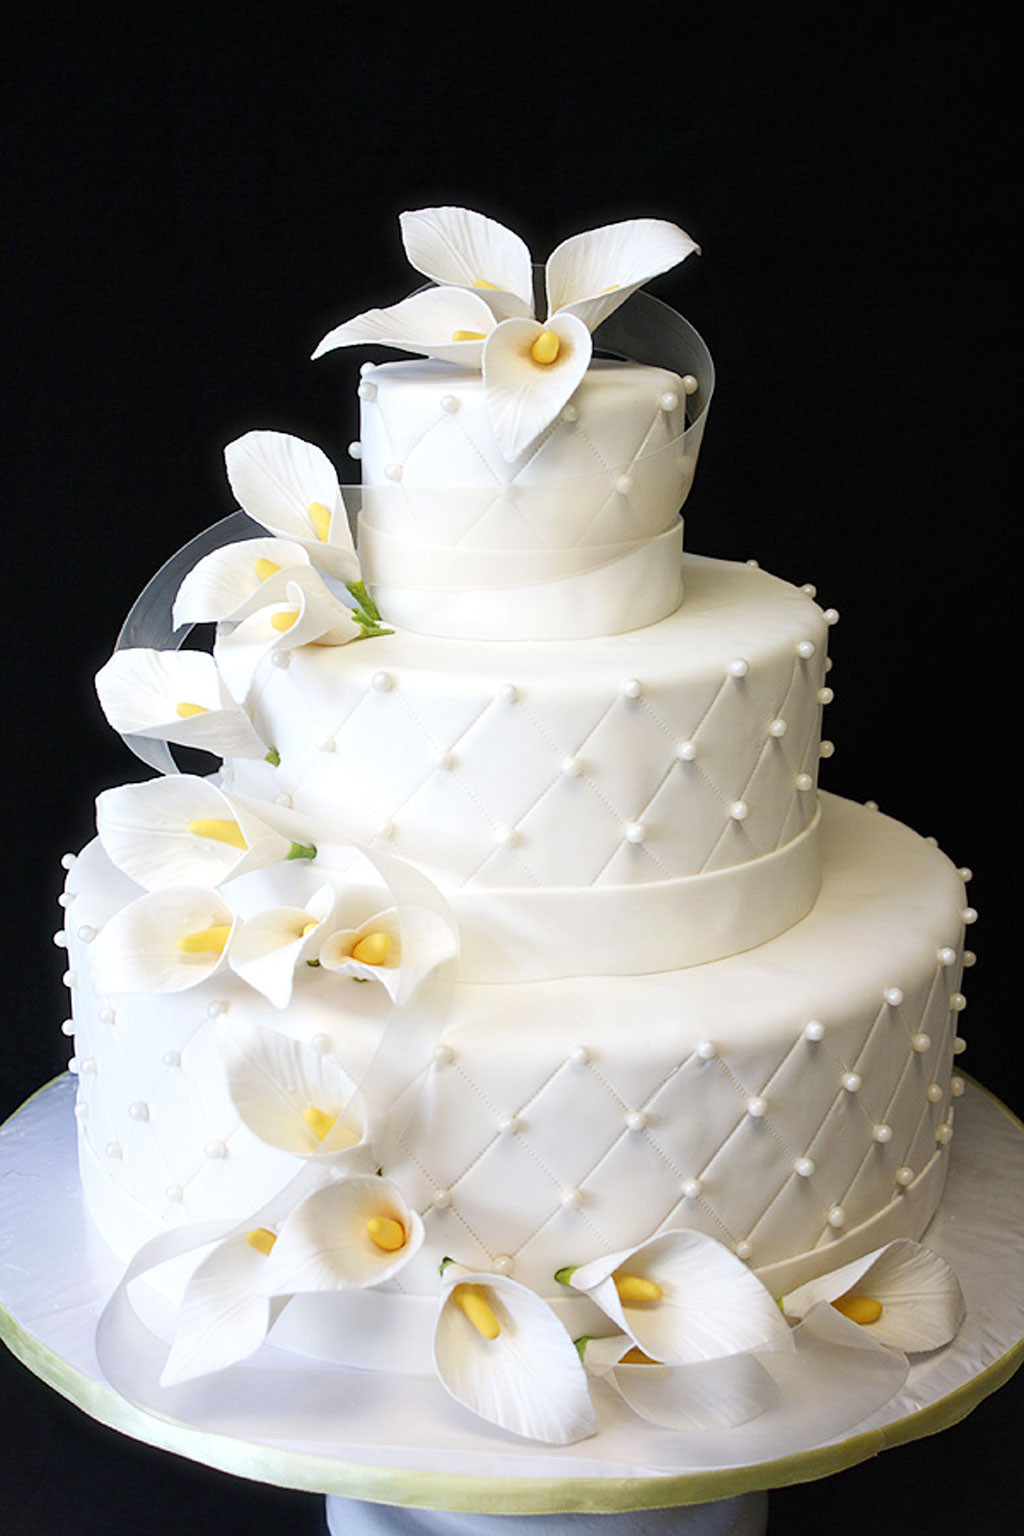 Lilly Wedding Cakes  Wedding Cake With Calla Lilies Wedding Cake Cake Ideas